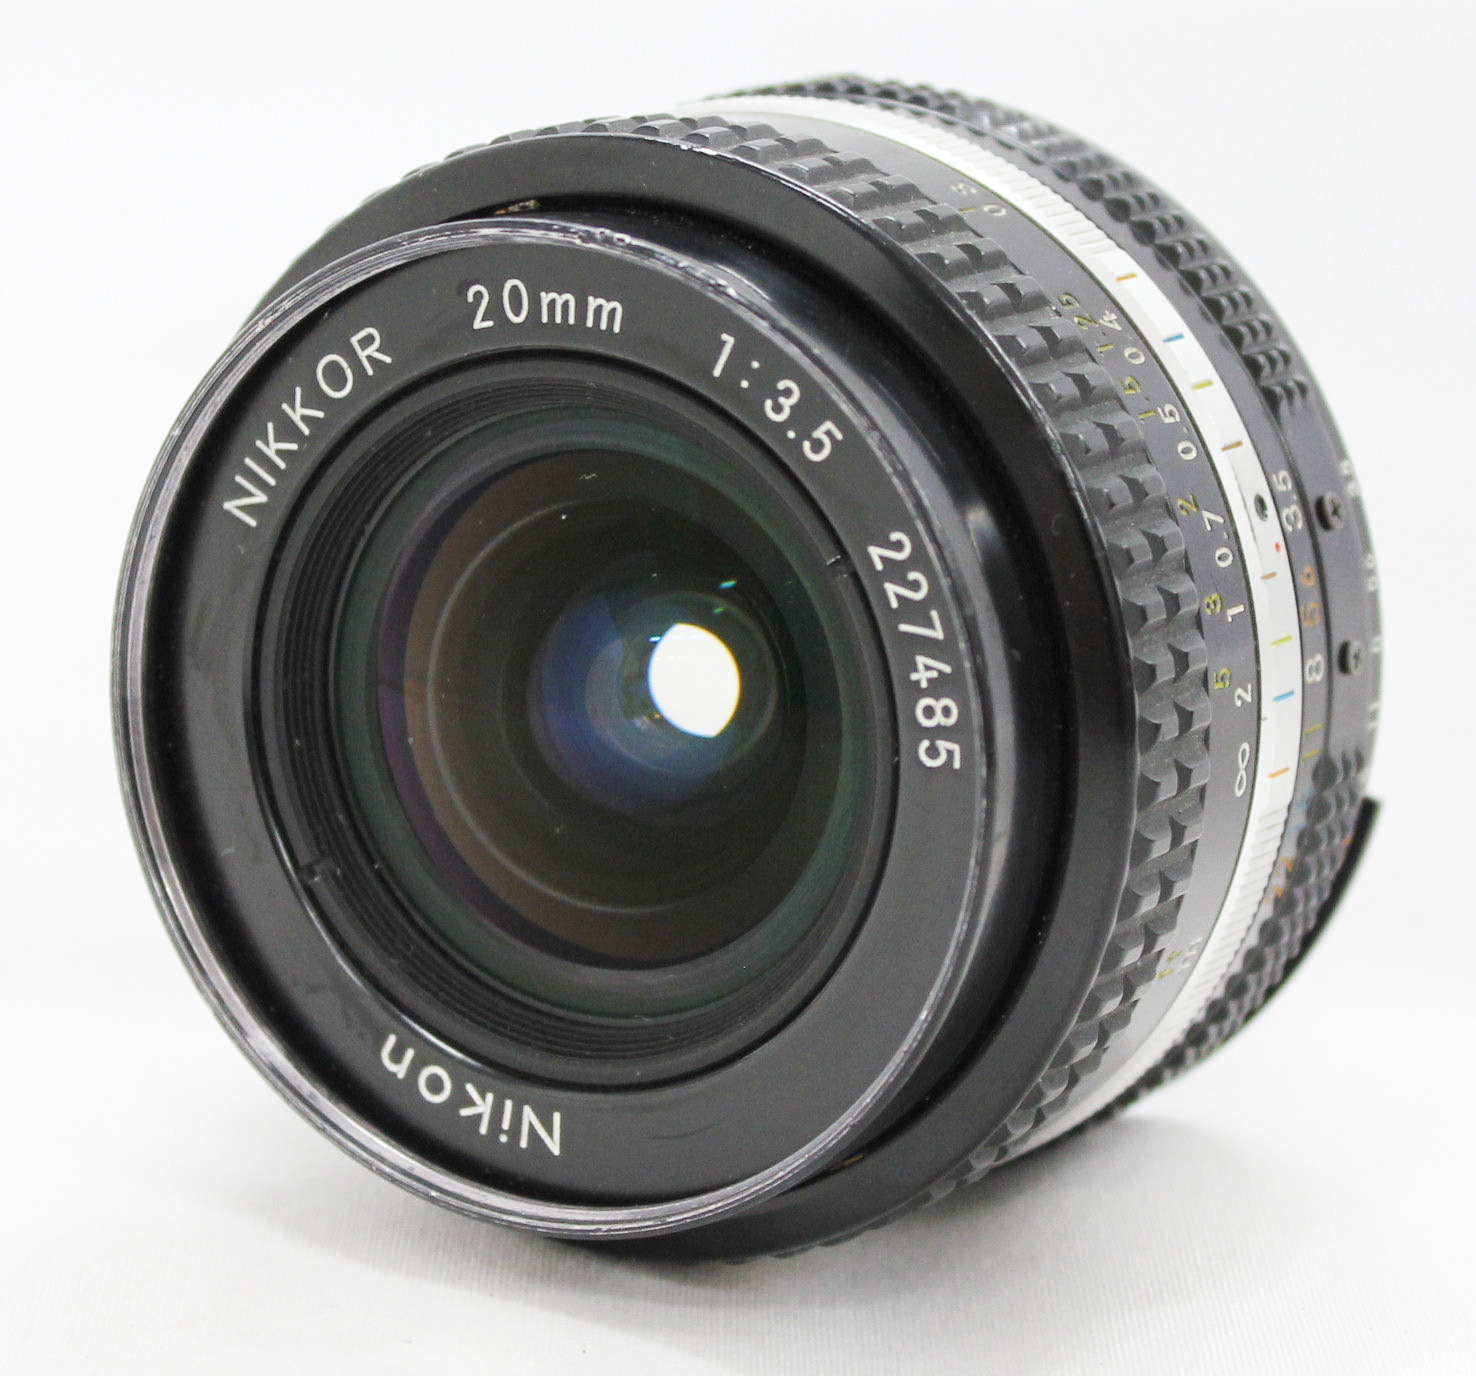 [Excellent++++] Nikon Ai-s Ais Nikkor 20mm F/3.5 Wide Angle MF Lens from Japan